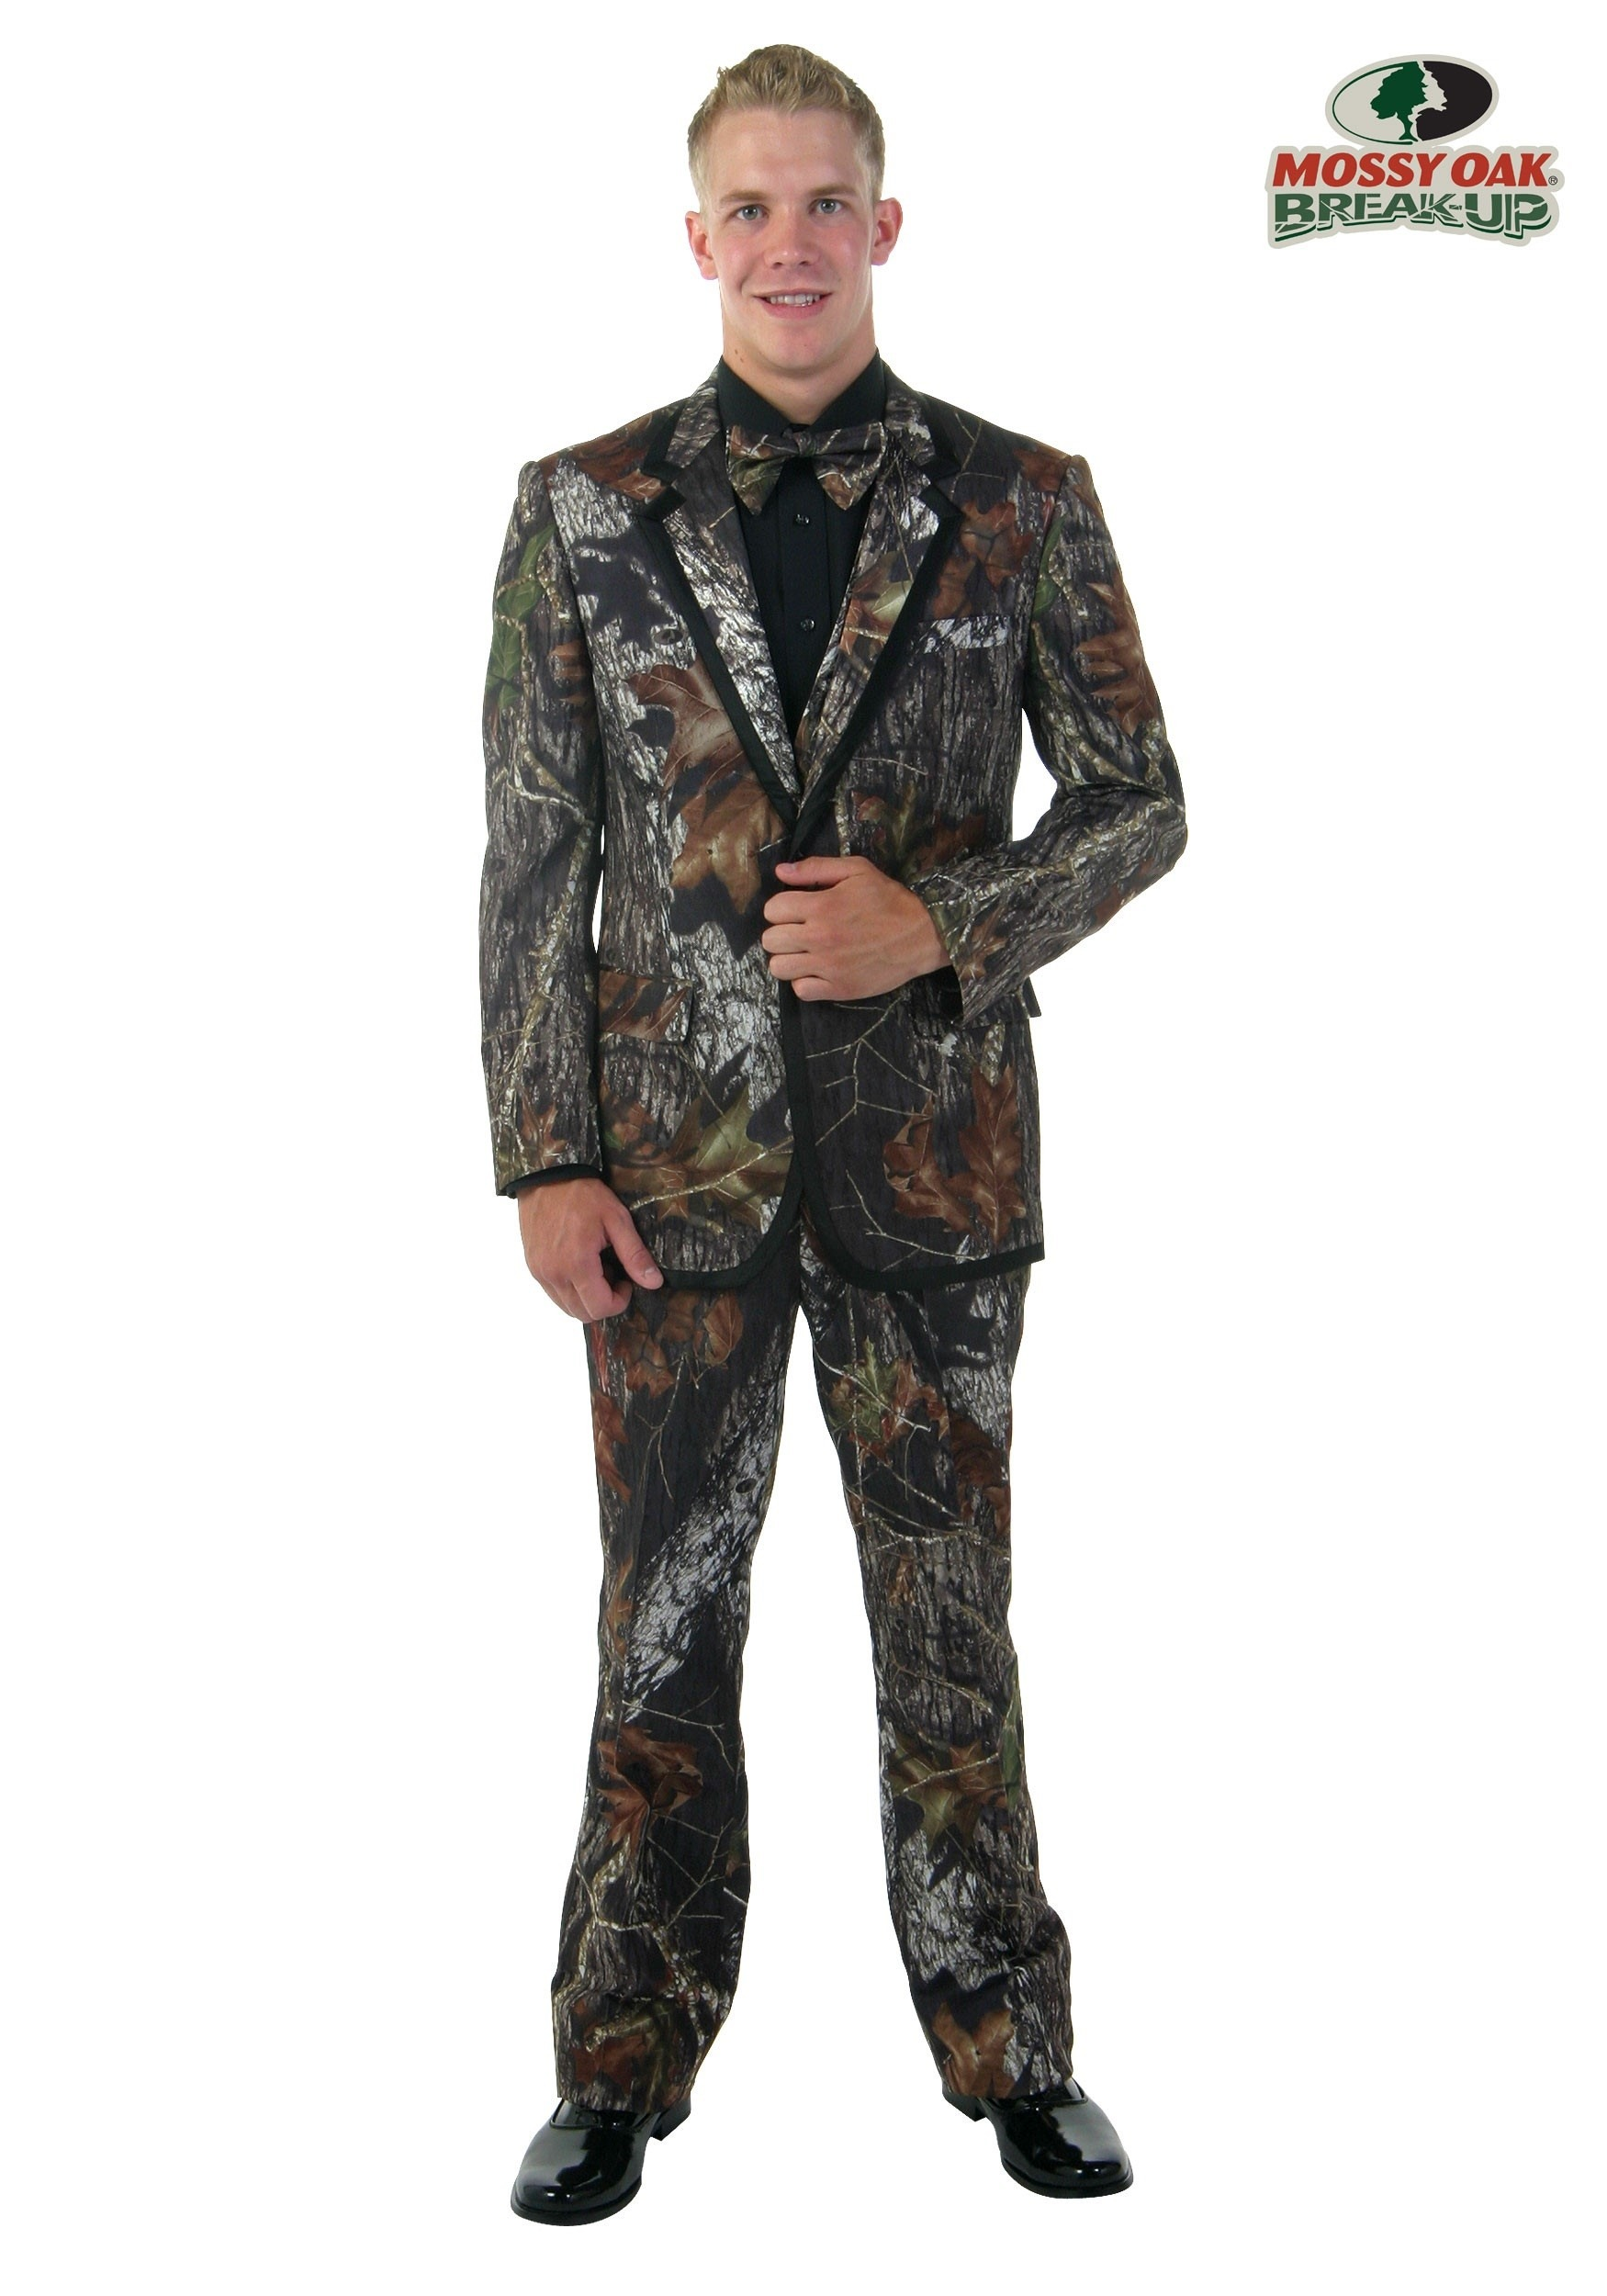 camouflage wedding dresses and tuxedos camo dresses for wedding Camouflage Wedding Dresses And Tuxedos 89